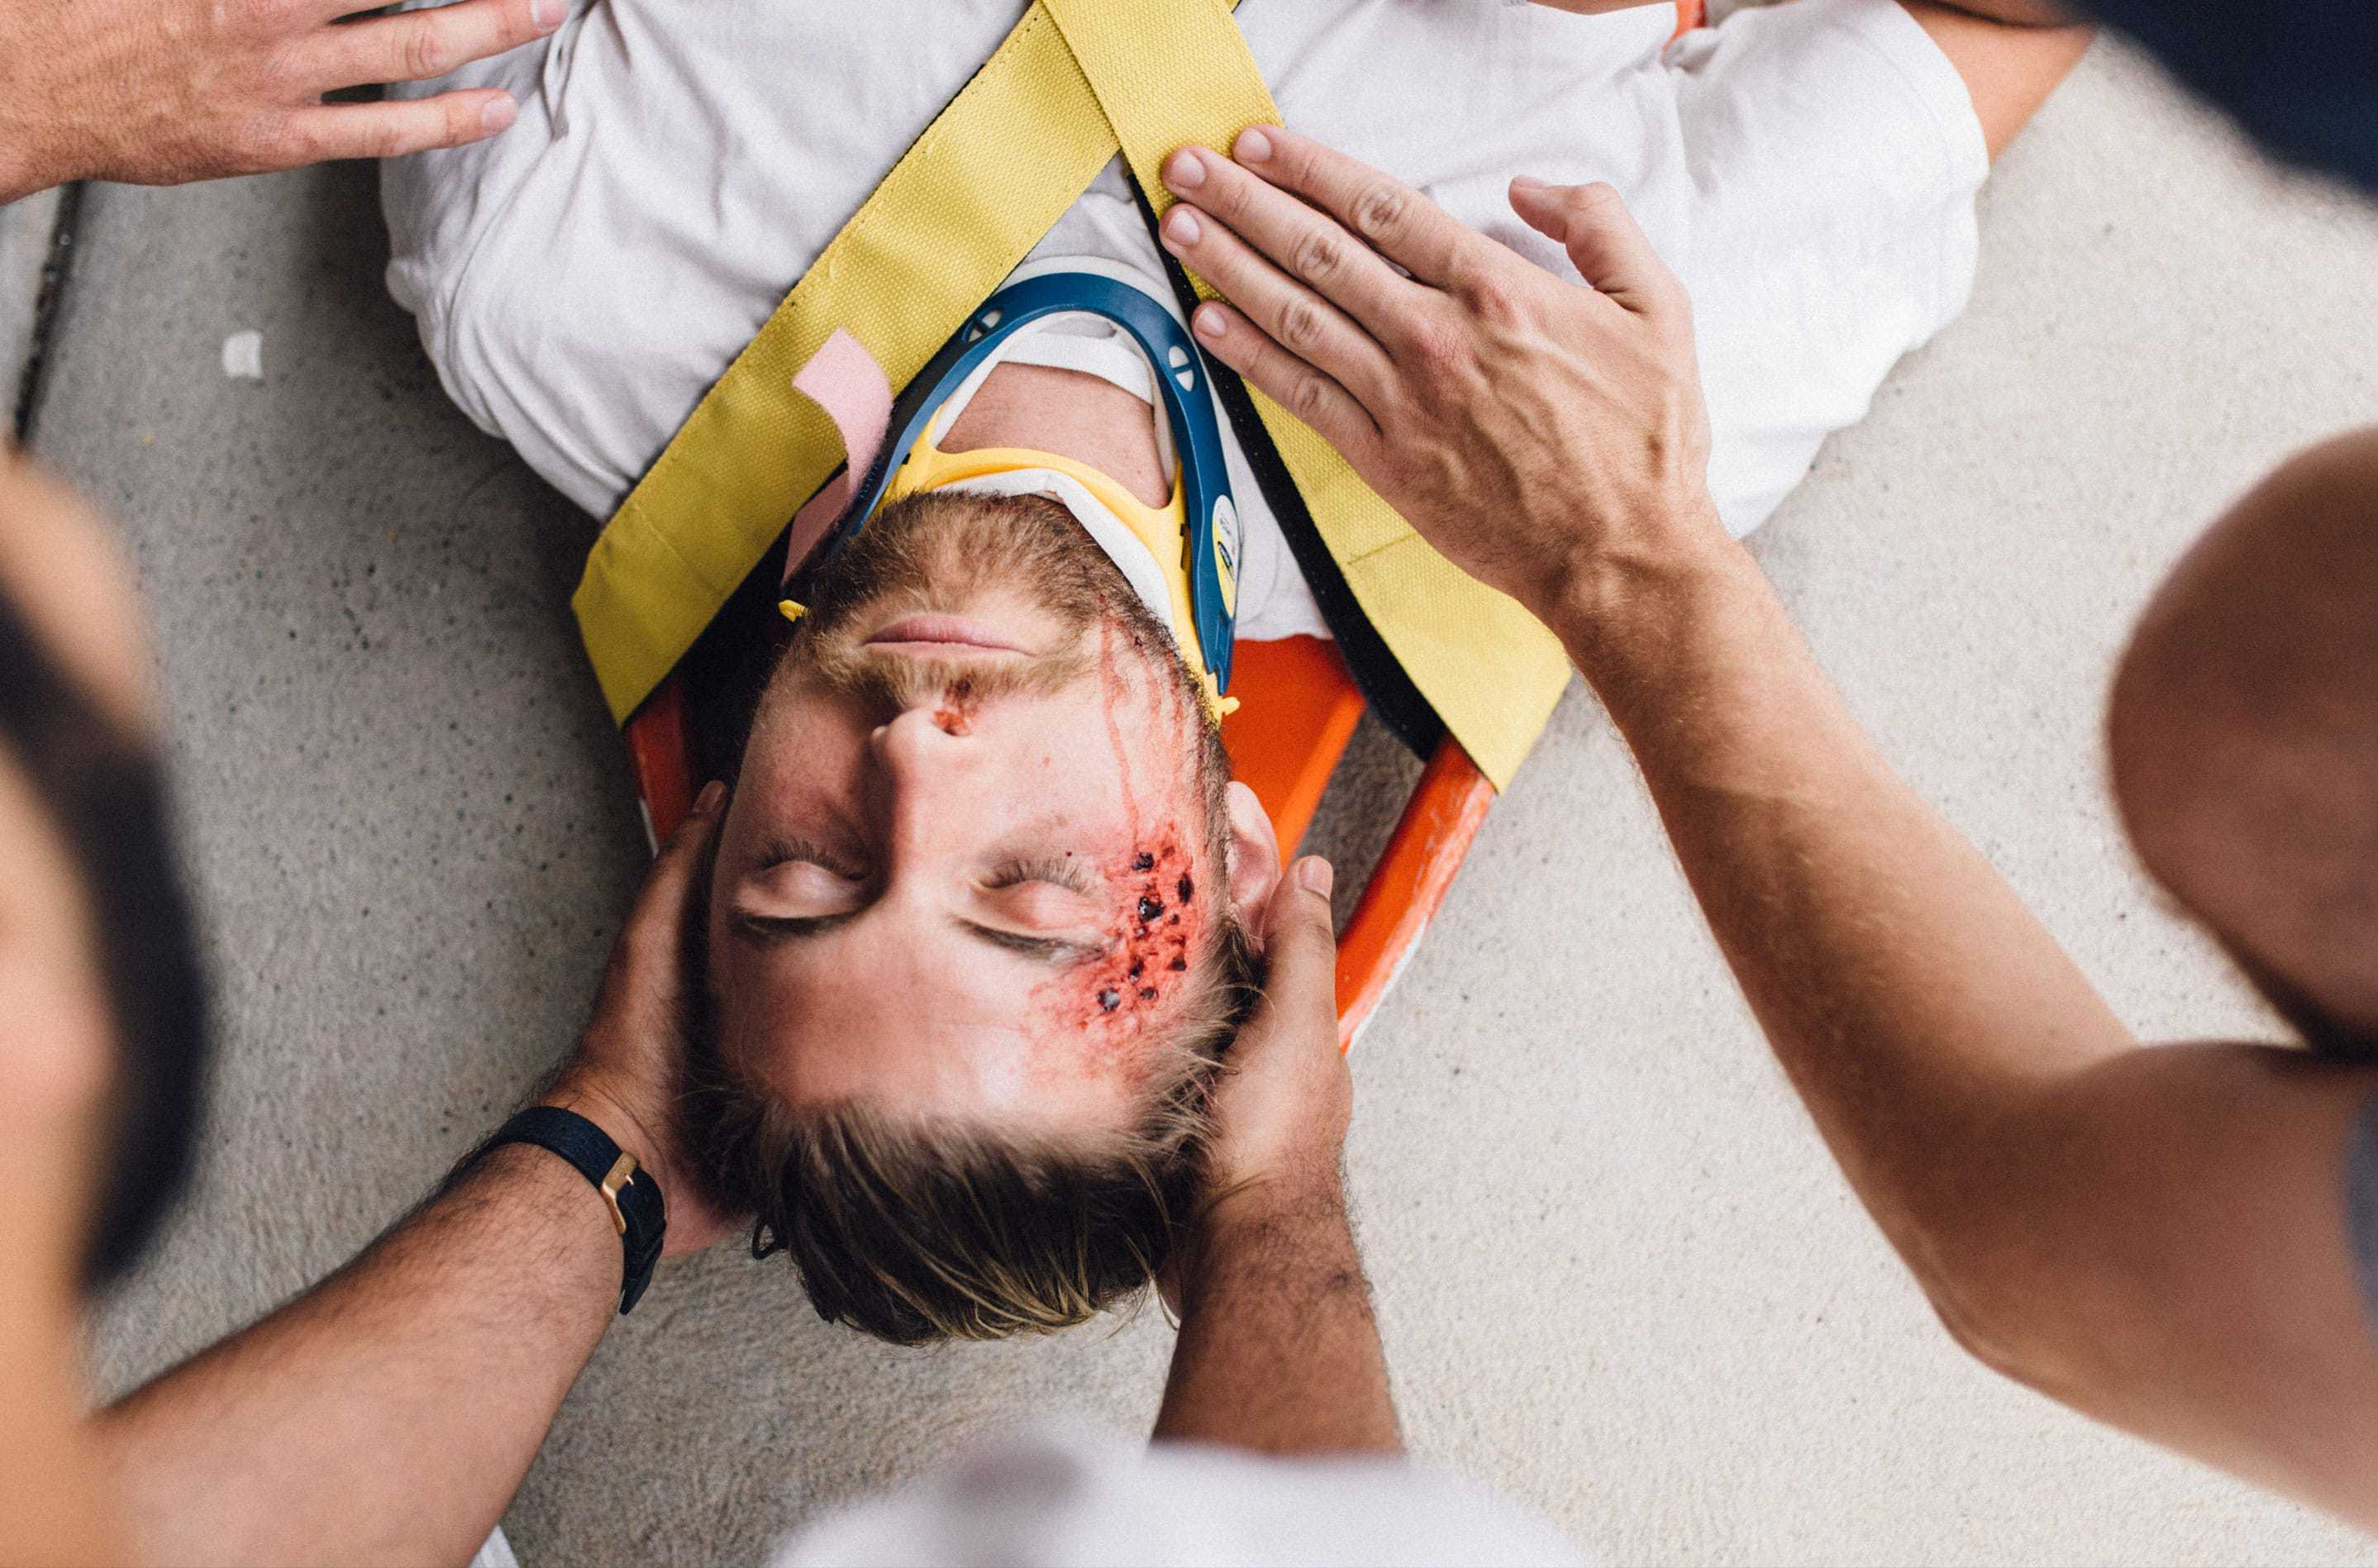 First Aid Courses In Melbourne + Sydney - Real Response